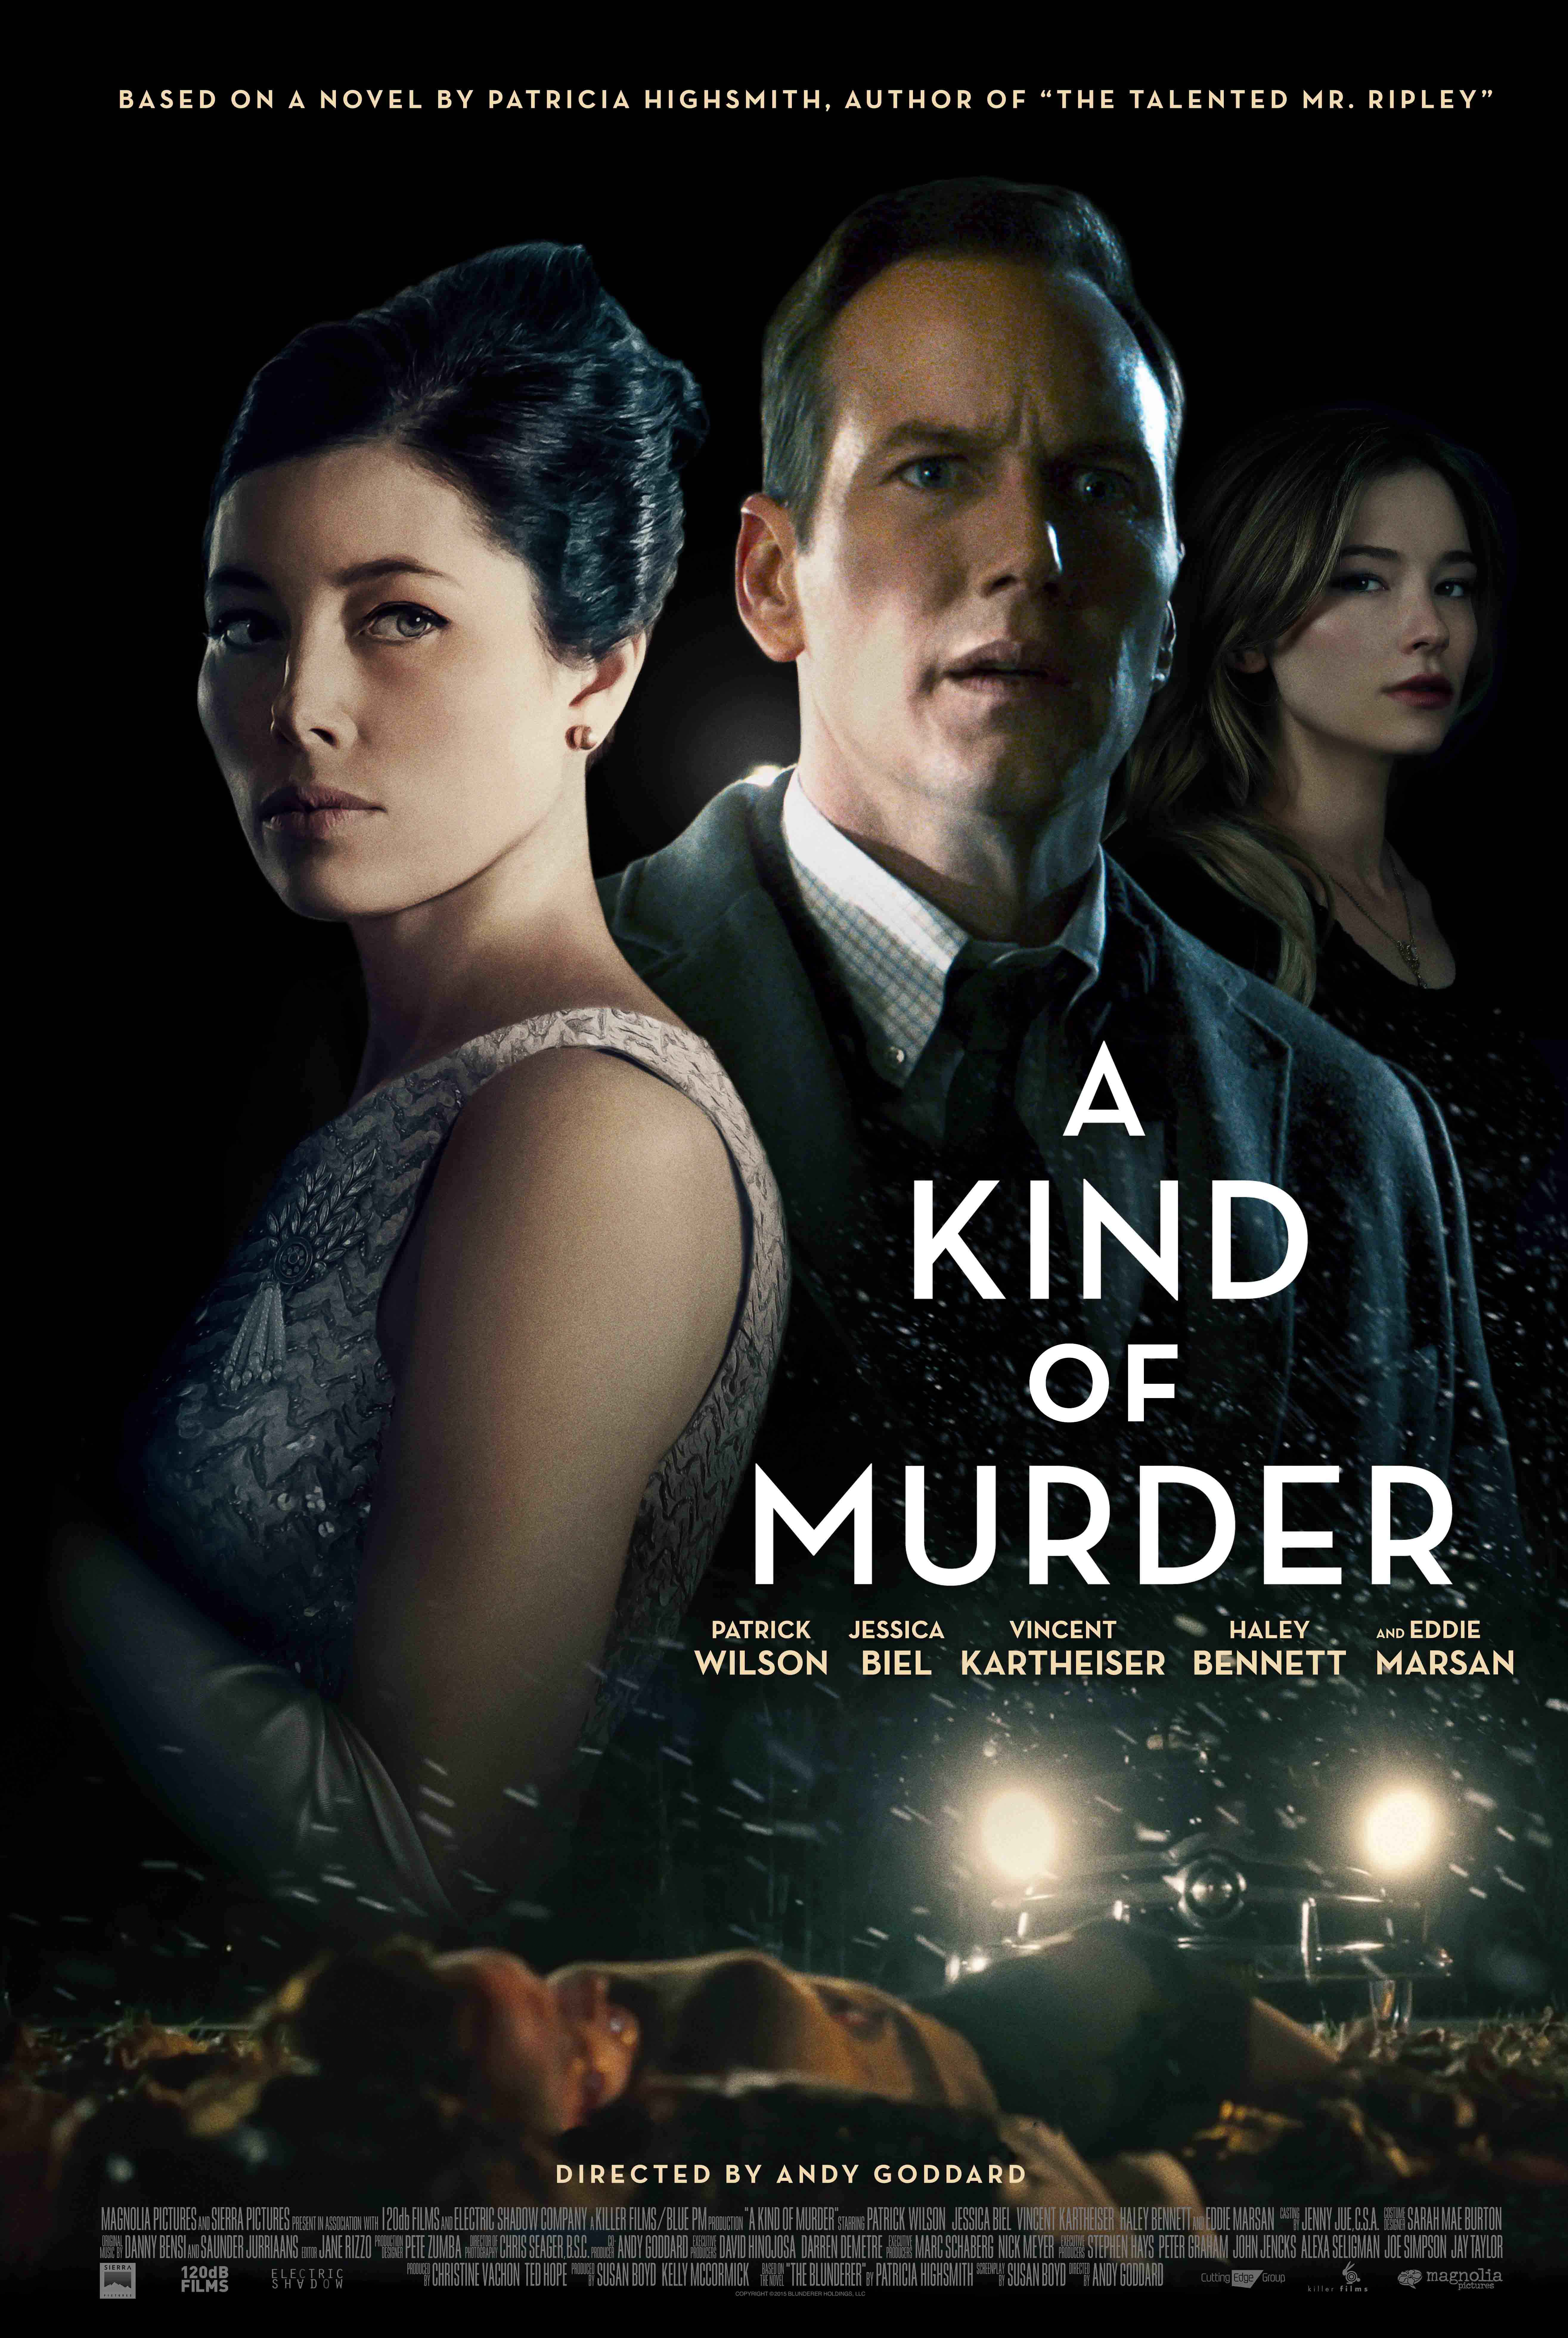 A Kind of Murder (Official Movie Site) - Starring Patrick Wilson